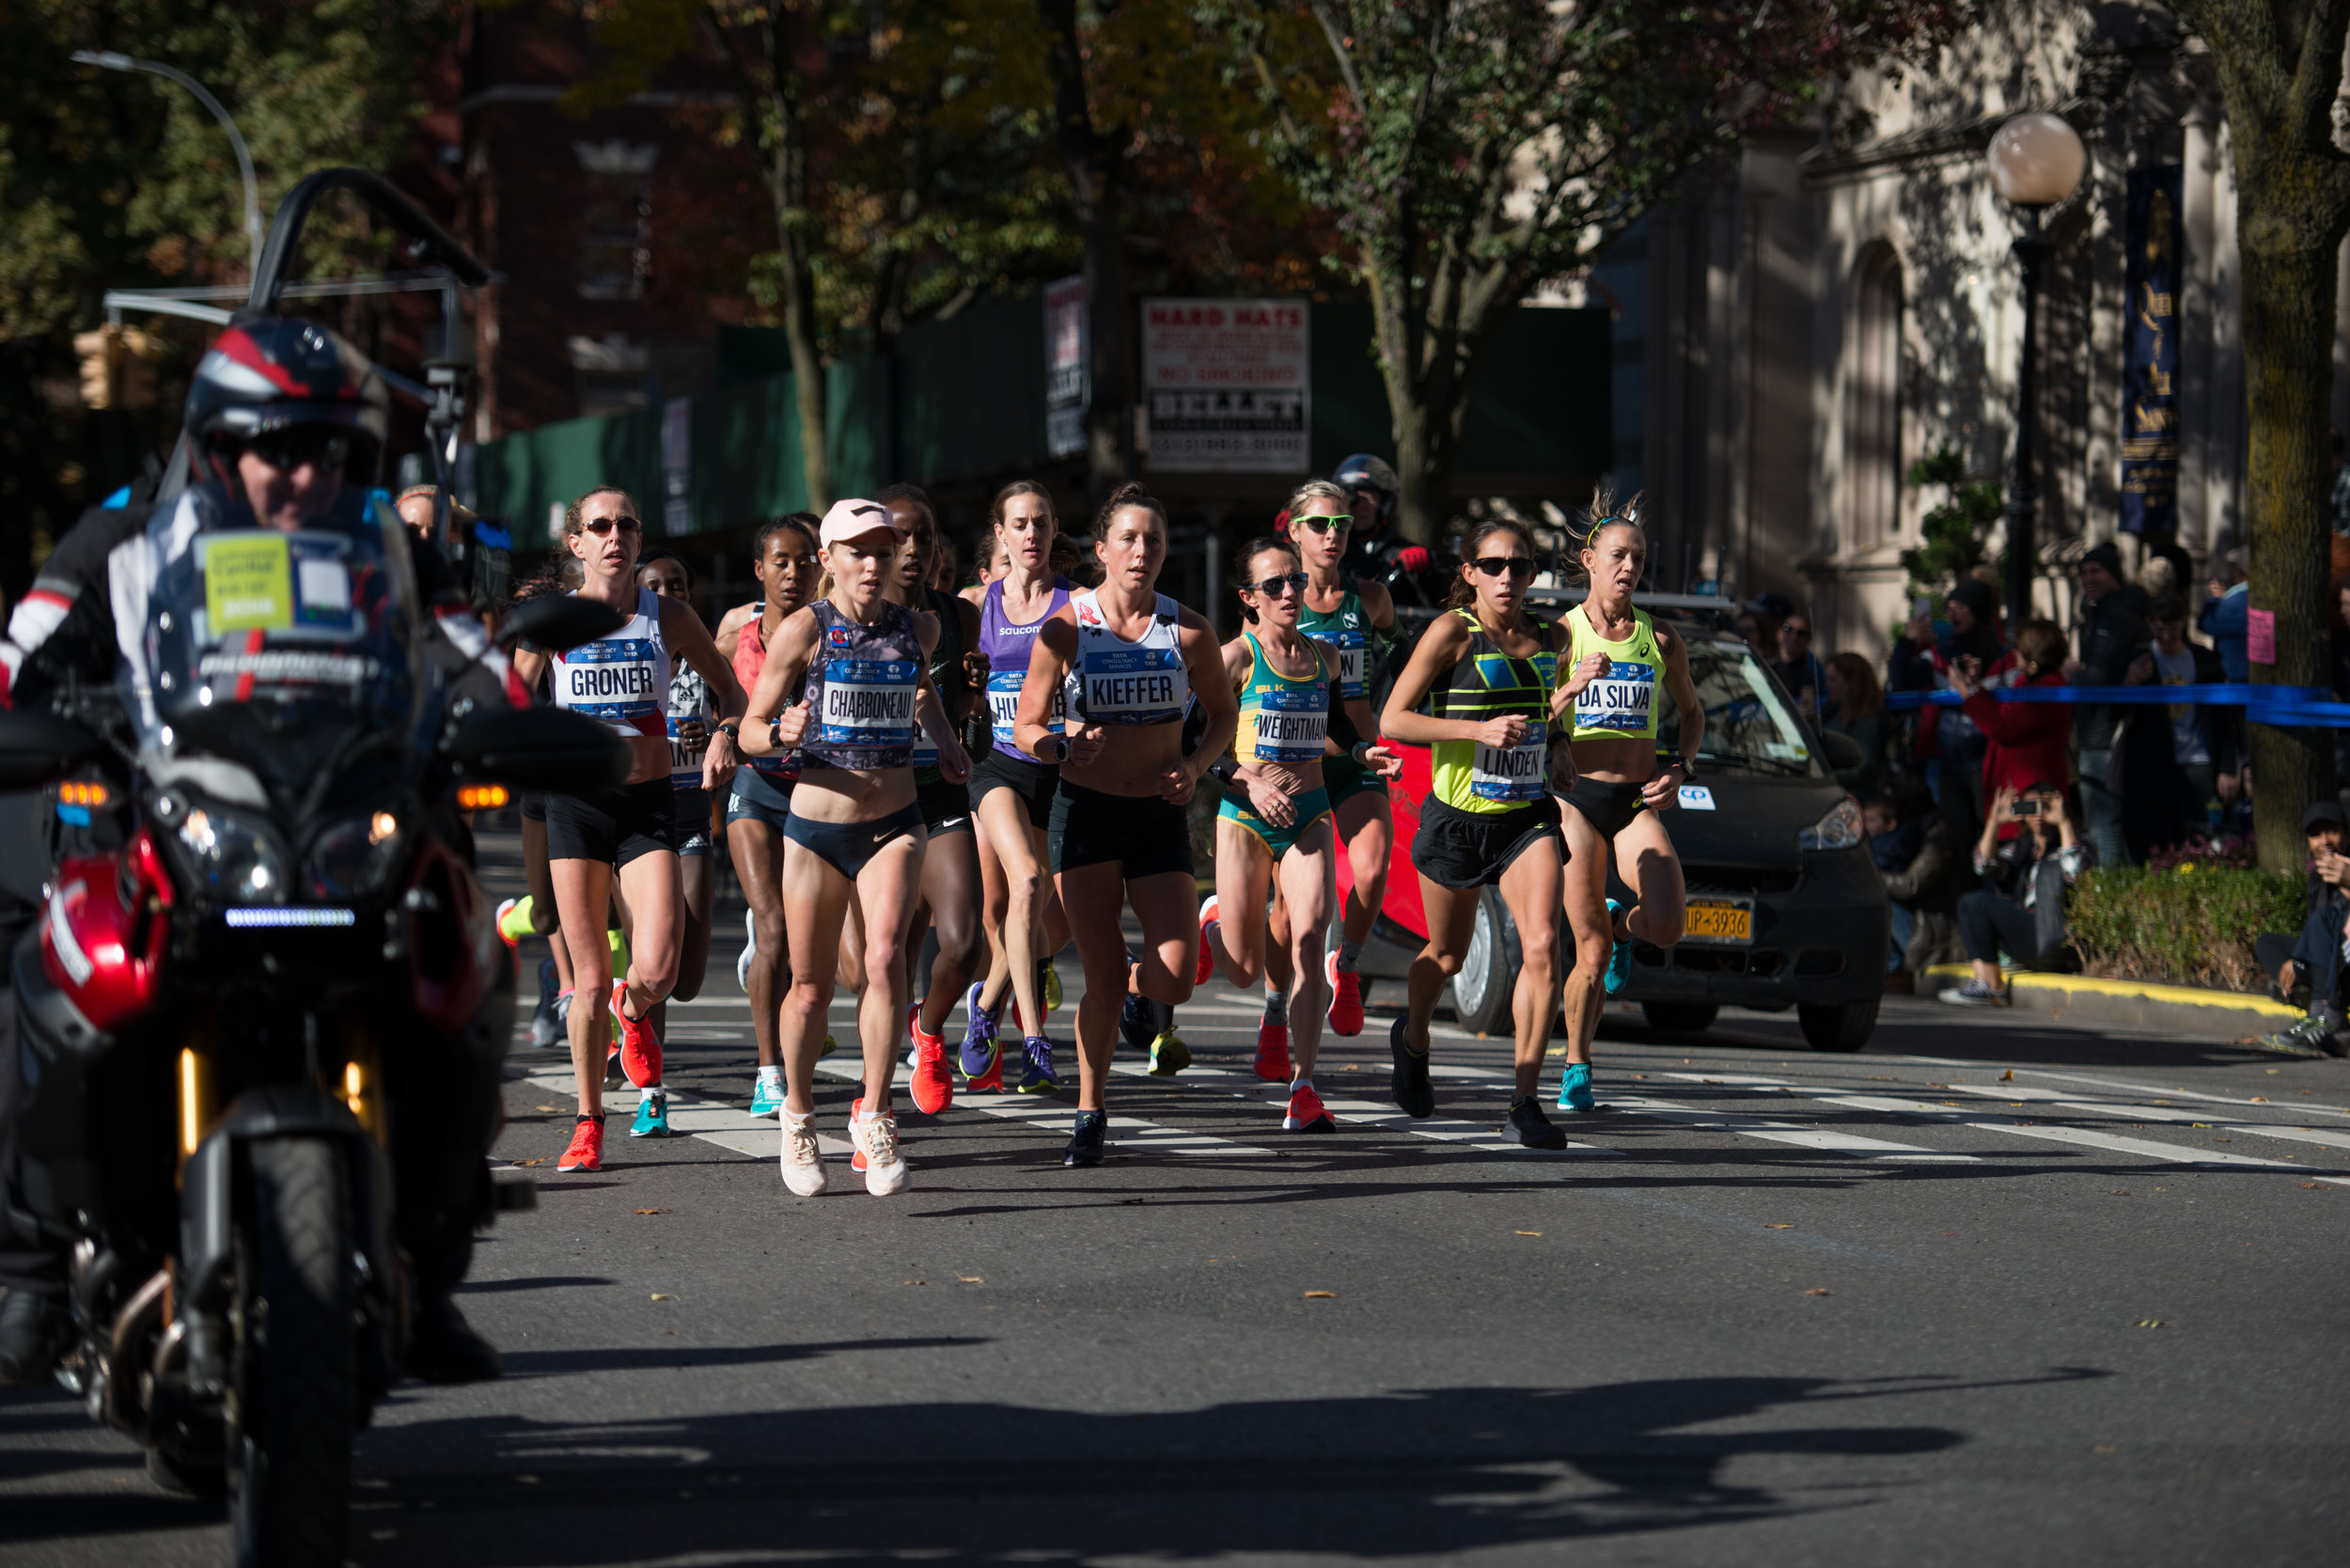 Kieffer at the front of the lead pack in Brooklyn at the 2018 TCS New York City Marathon.